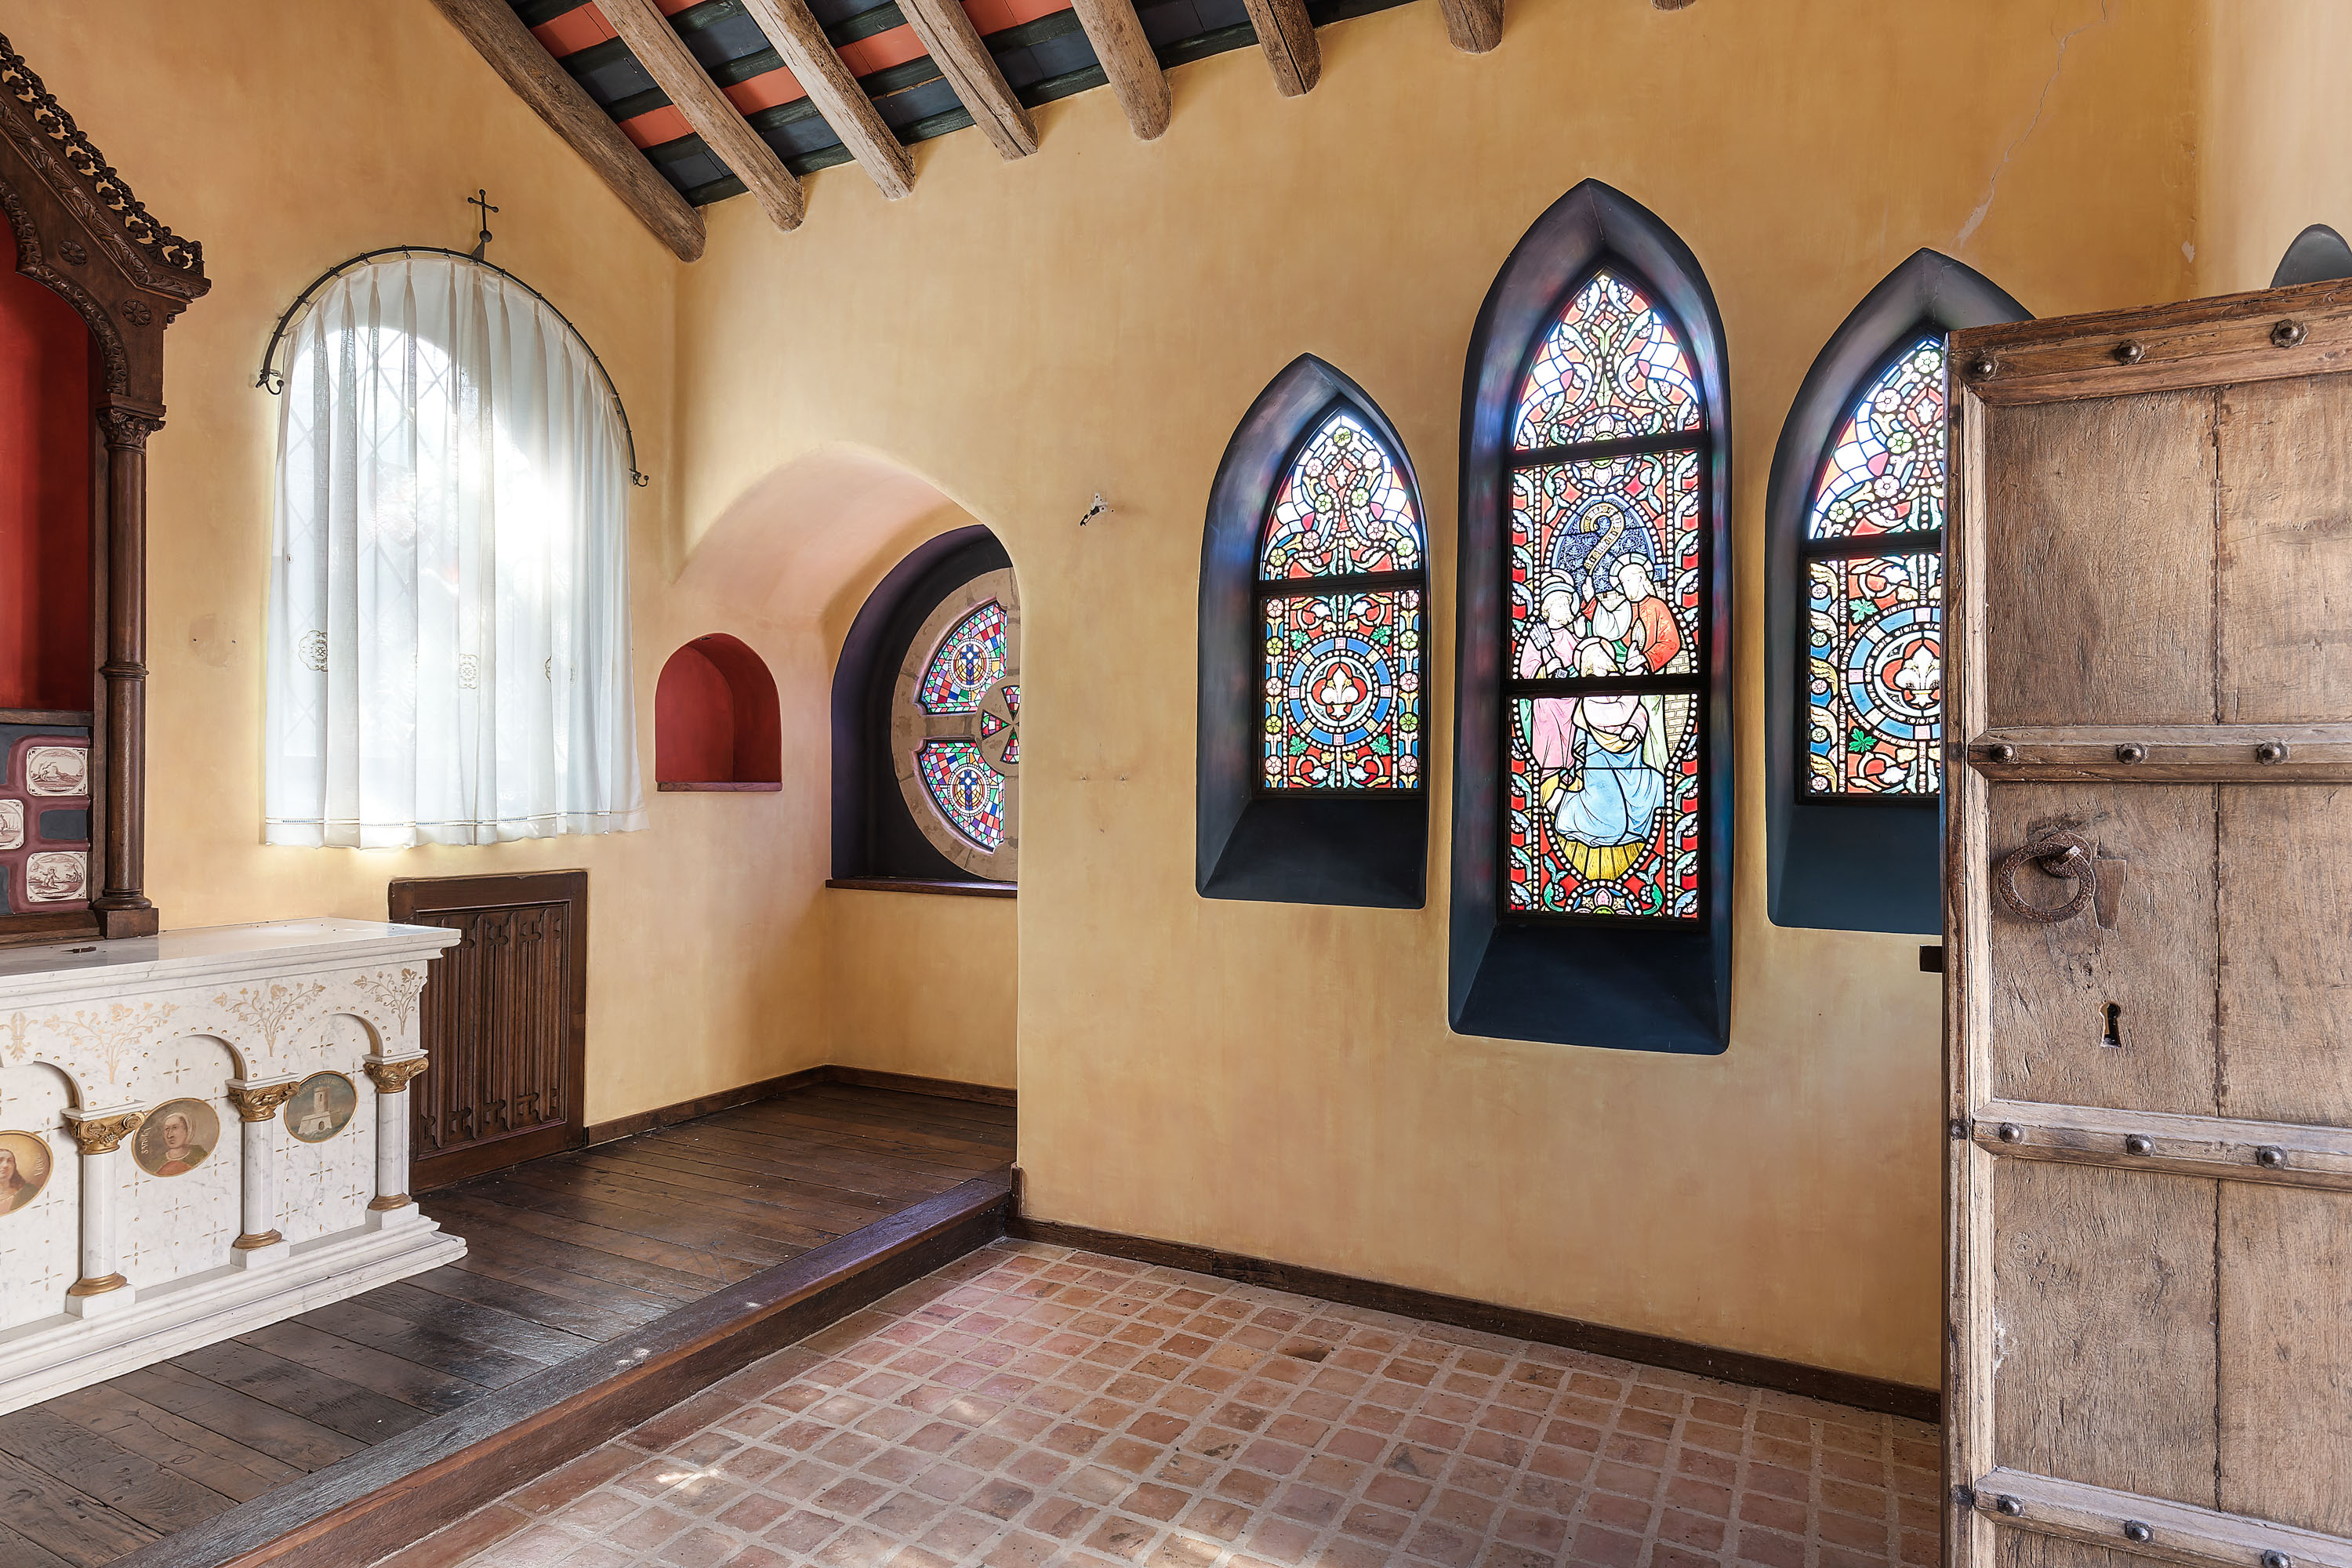 Private chapel with stained glass windows